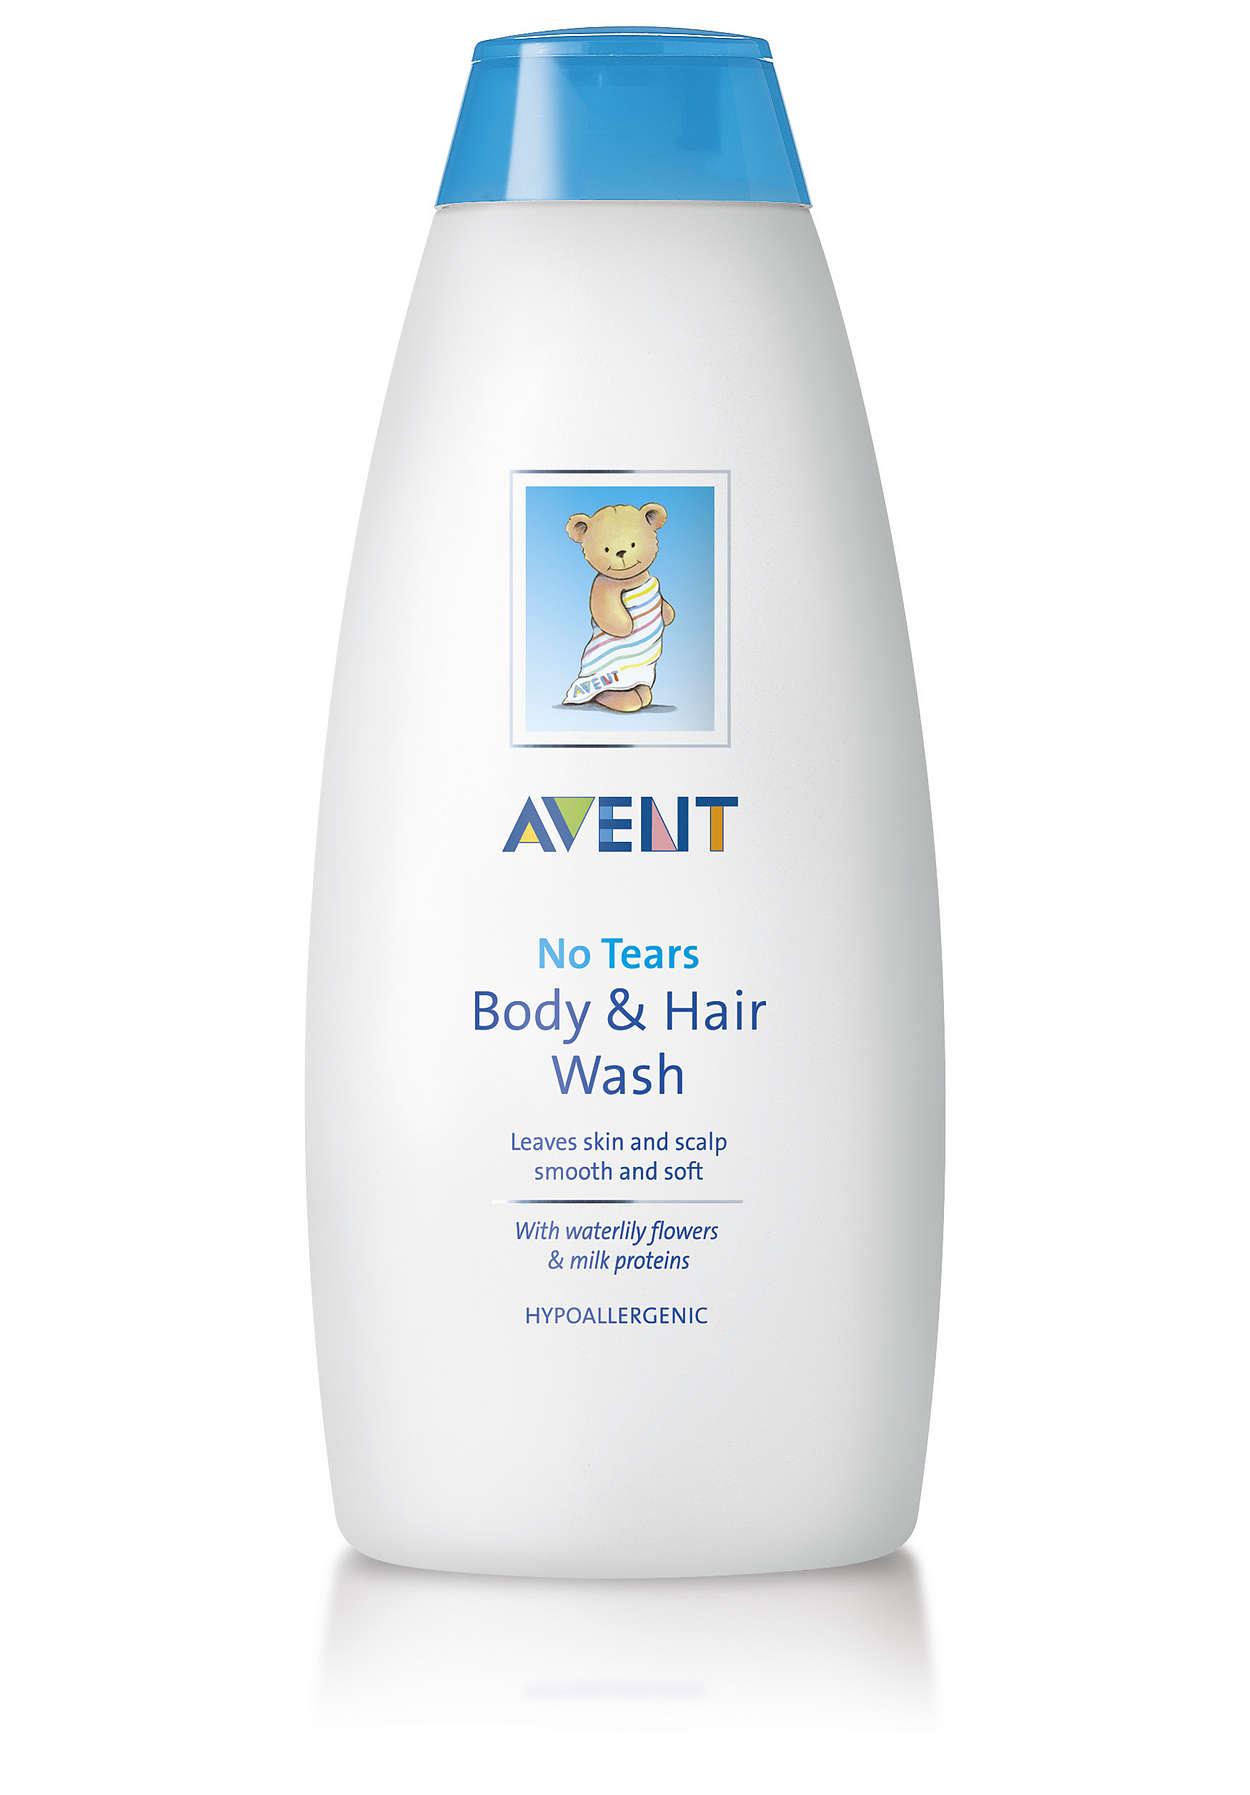 Leaves skin and scalp smooth and soft